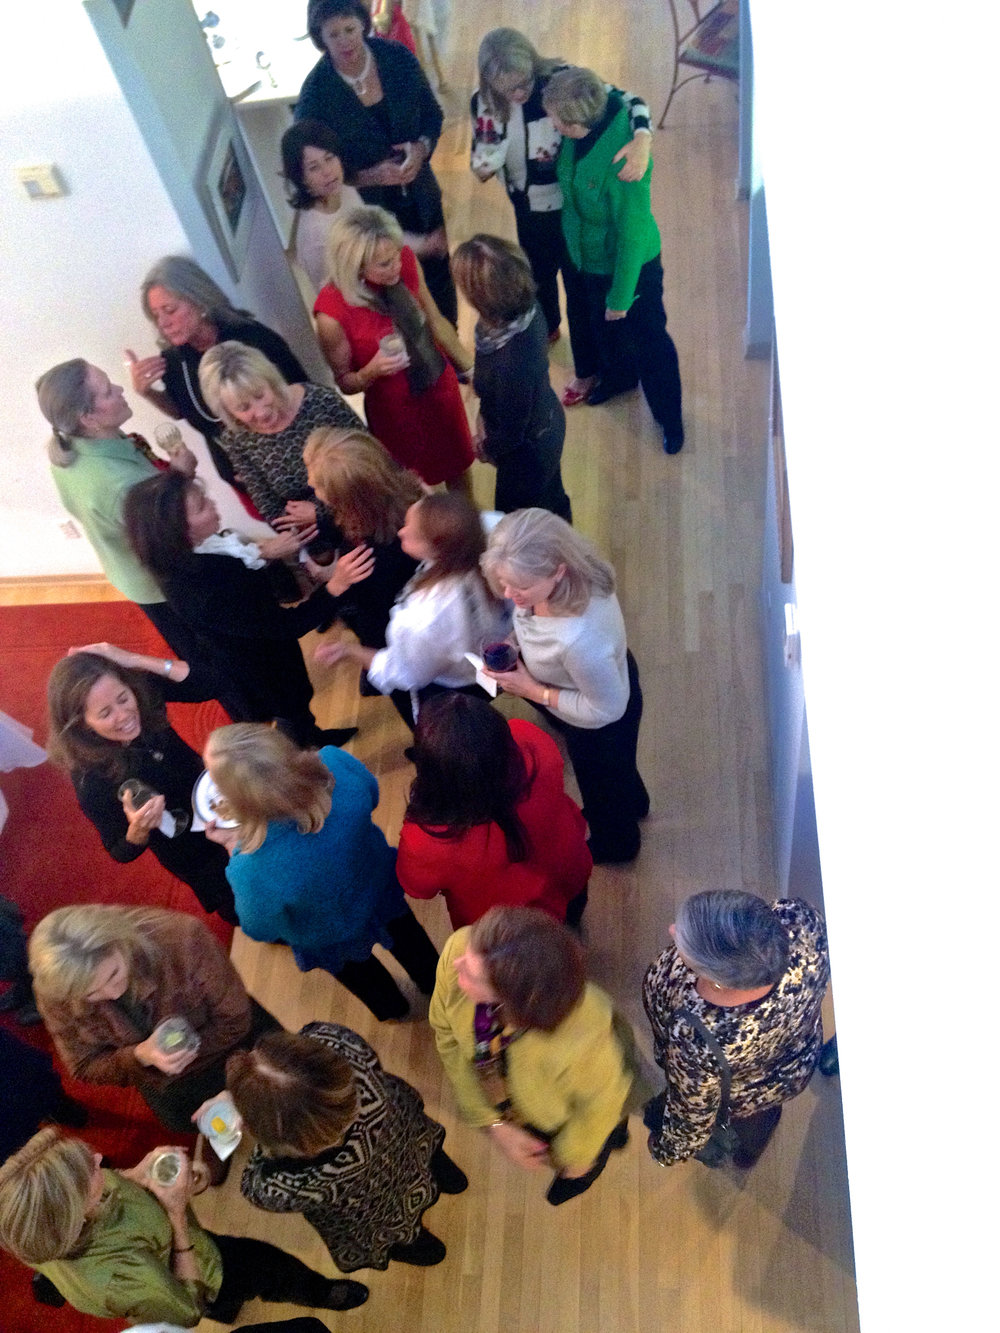 cindi_dessertparty_guests_christmas_spiritedtable_photo1.jpg